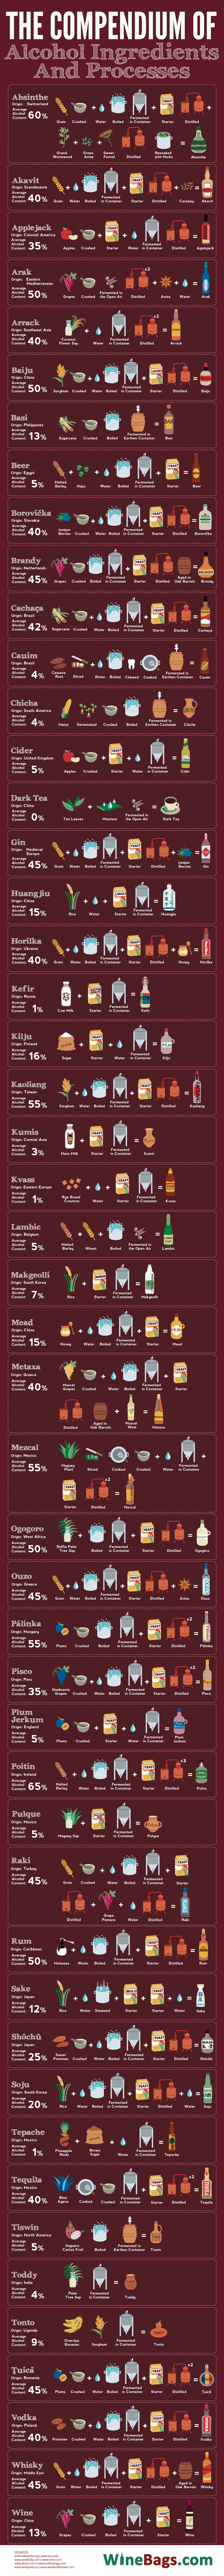 The Compendium of Alcohol Ingredients and Processes - Winebags.com - Infographic